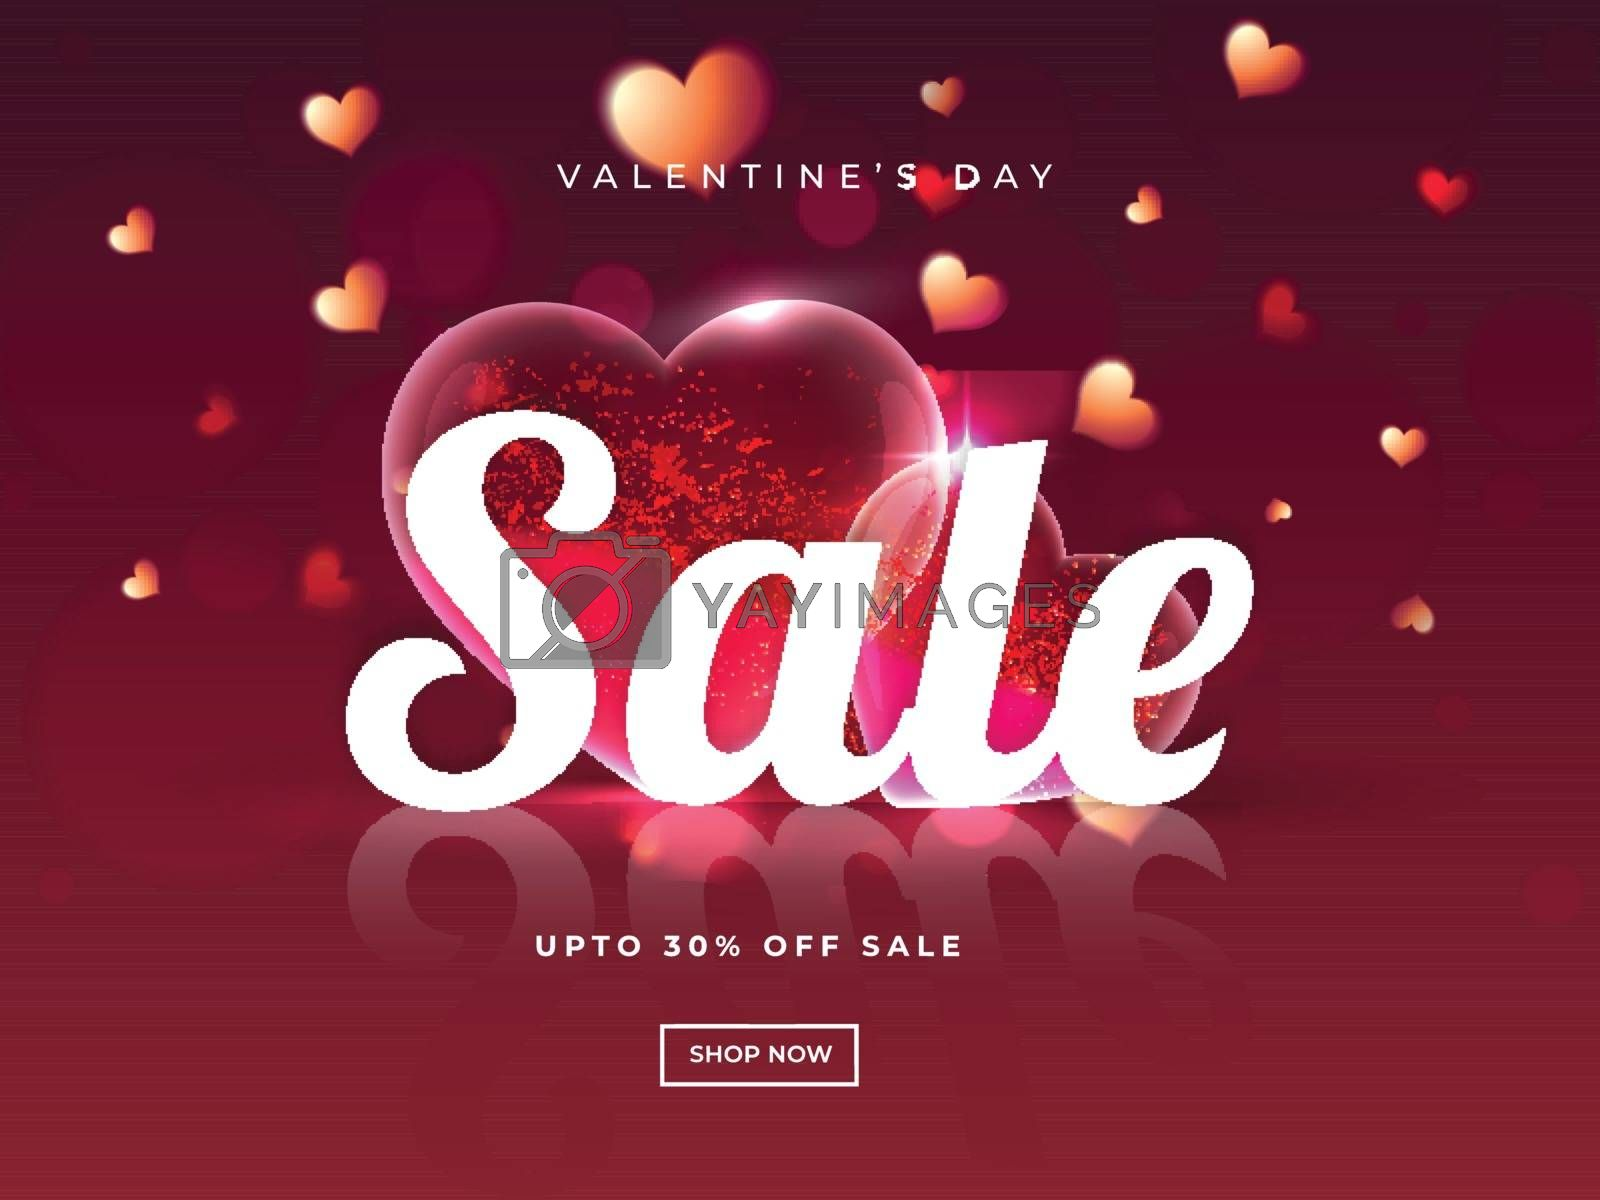 Valentine's Day sale poster or template design with 30% discount offer and decorative heart shapes on glossy red background.